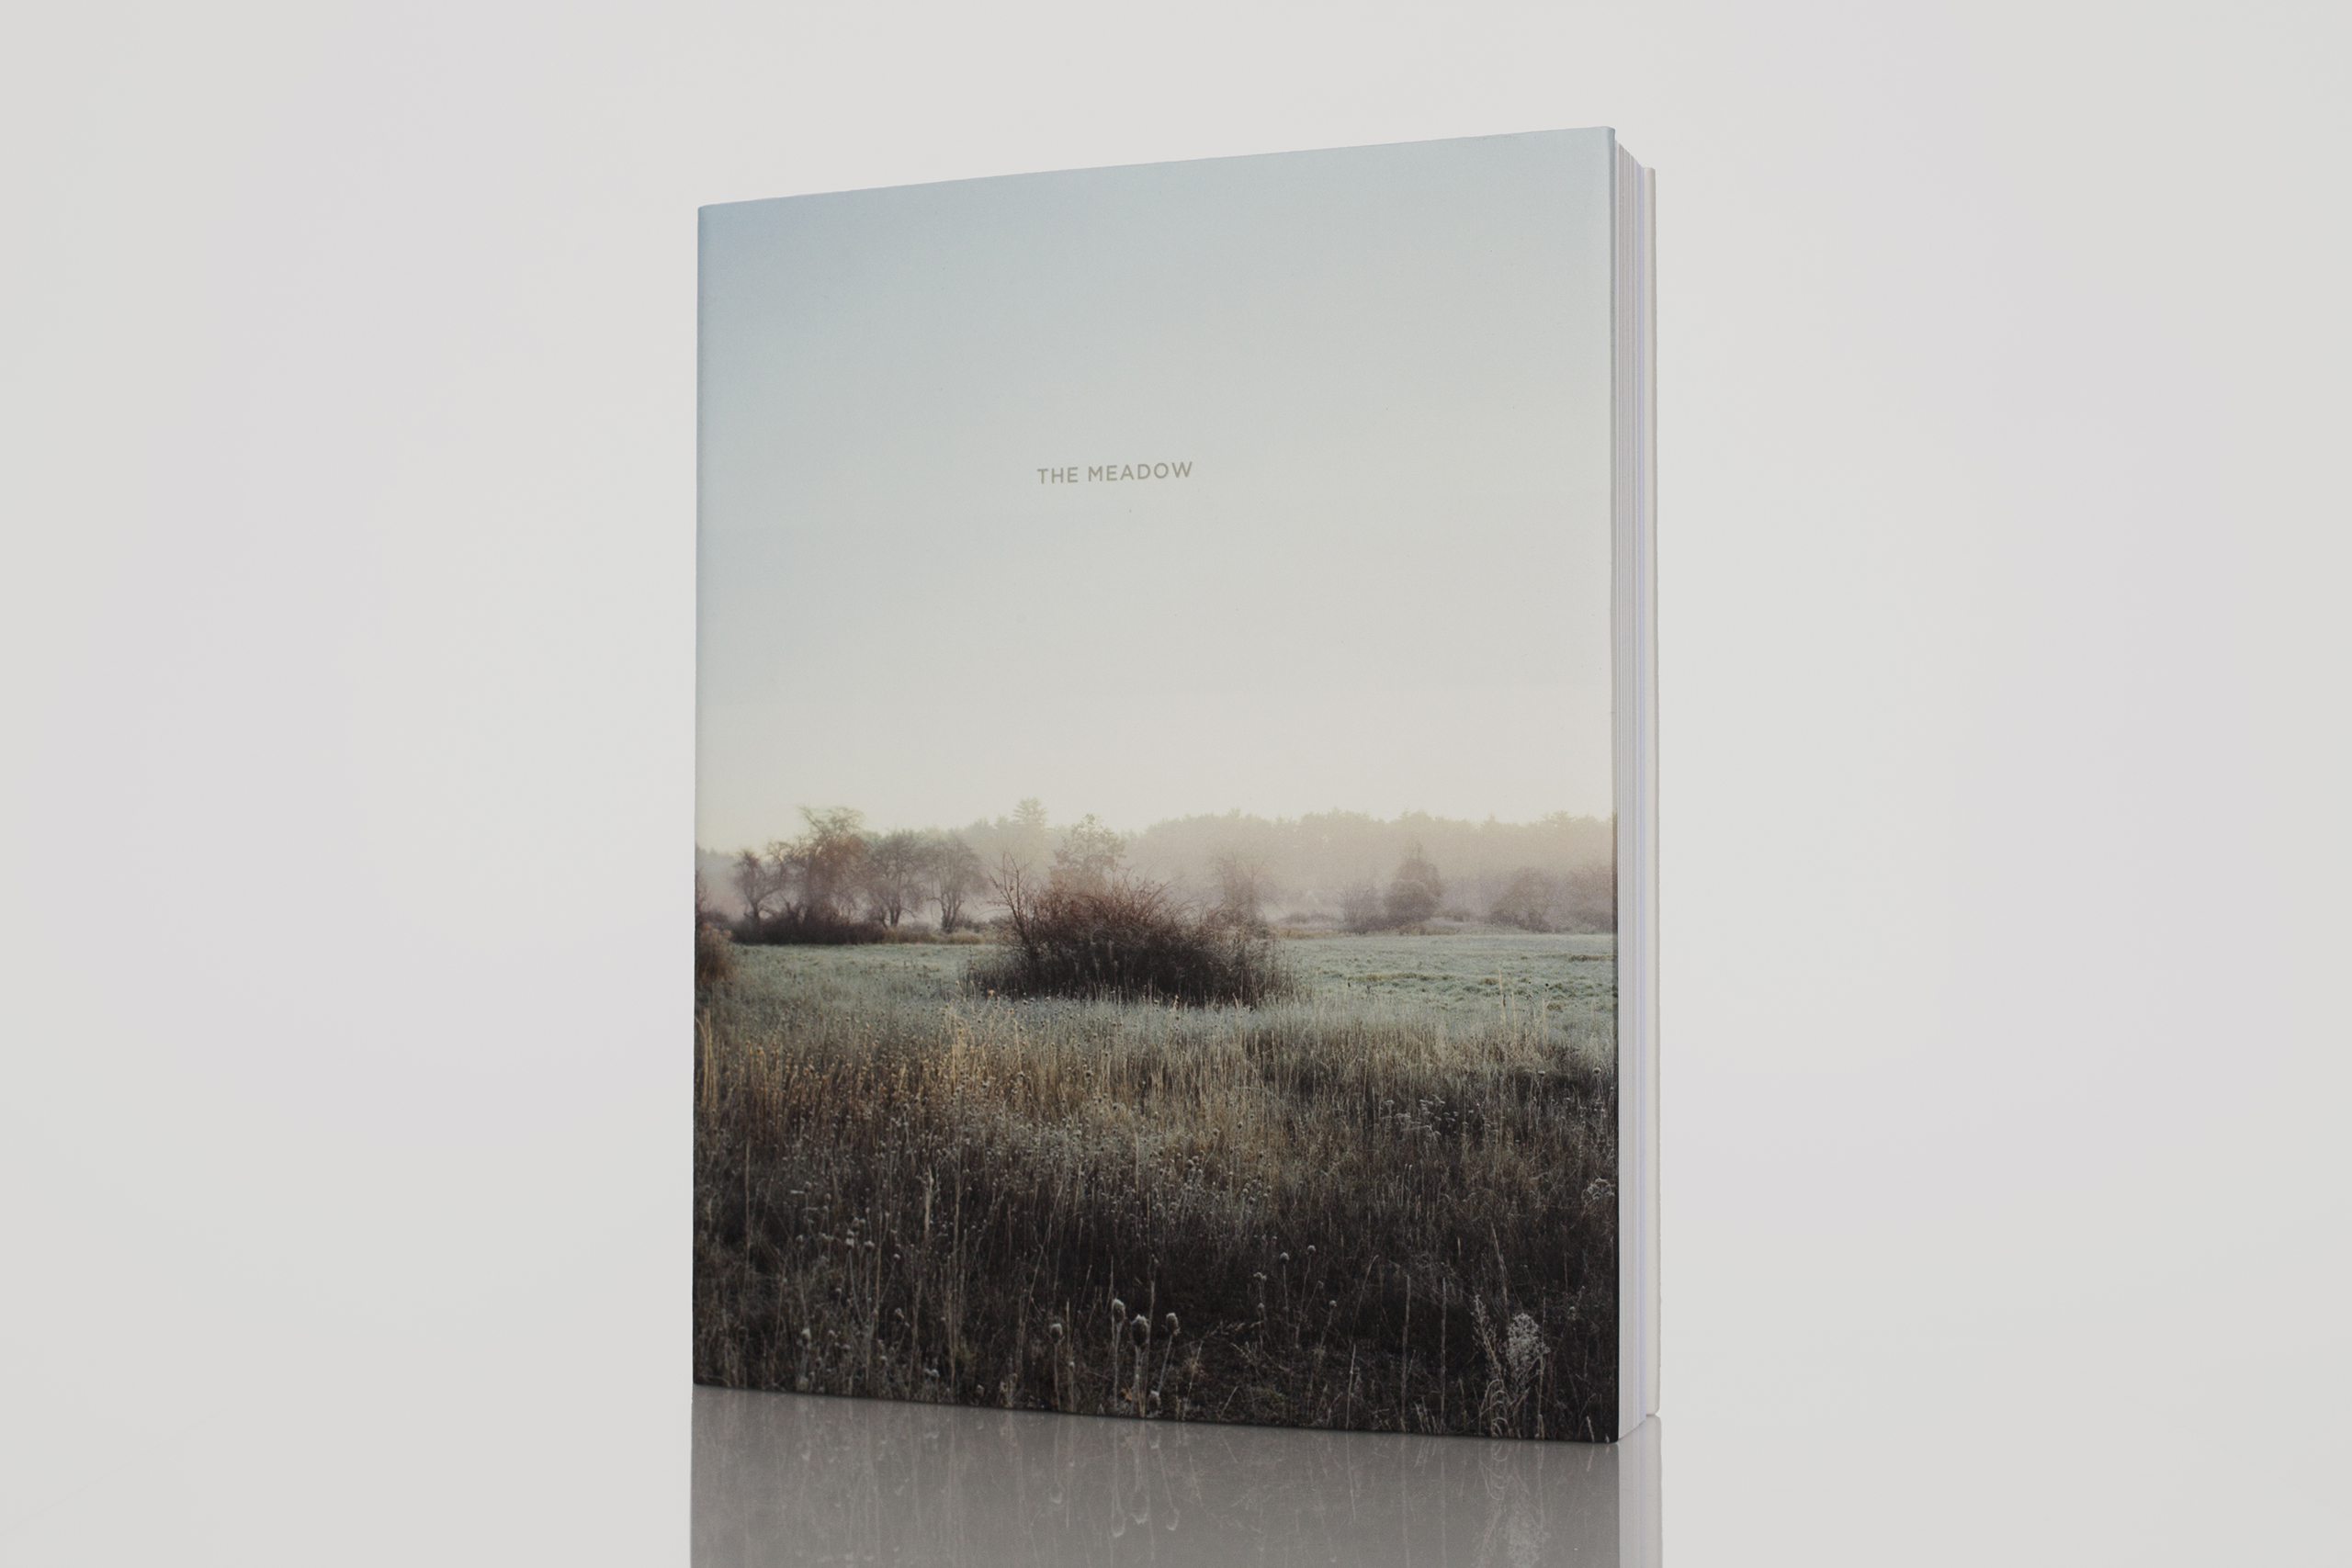 The Meadow by Barbara Bosworth and  Margot Anne KelleyPublished by Radius Books